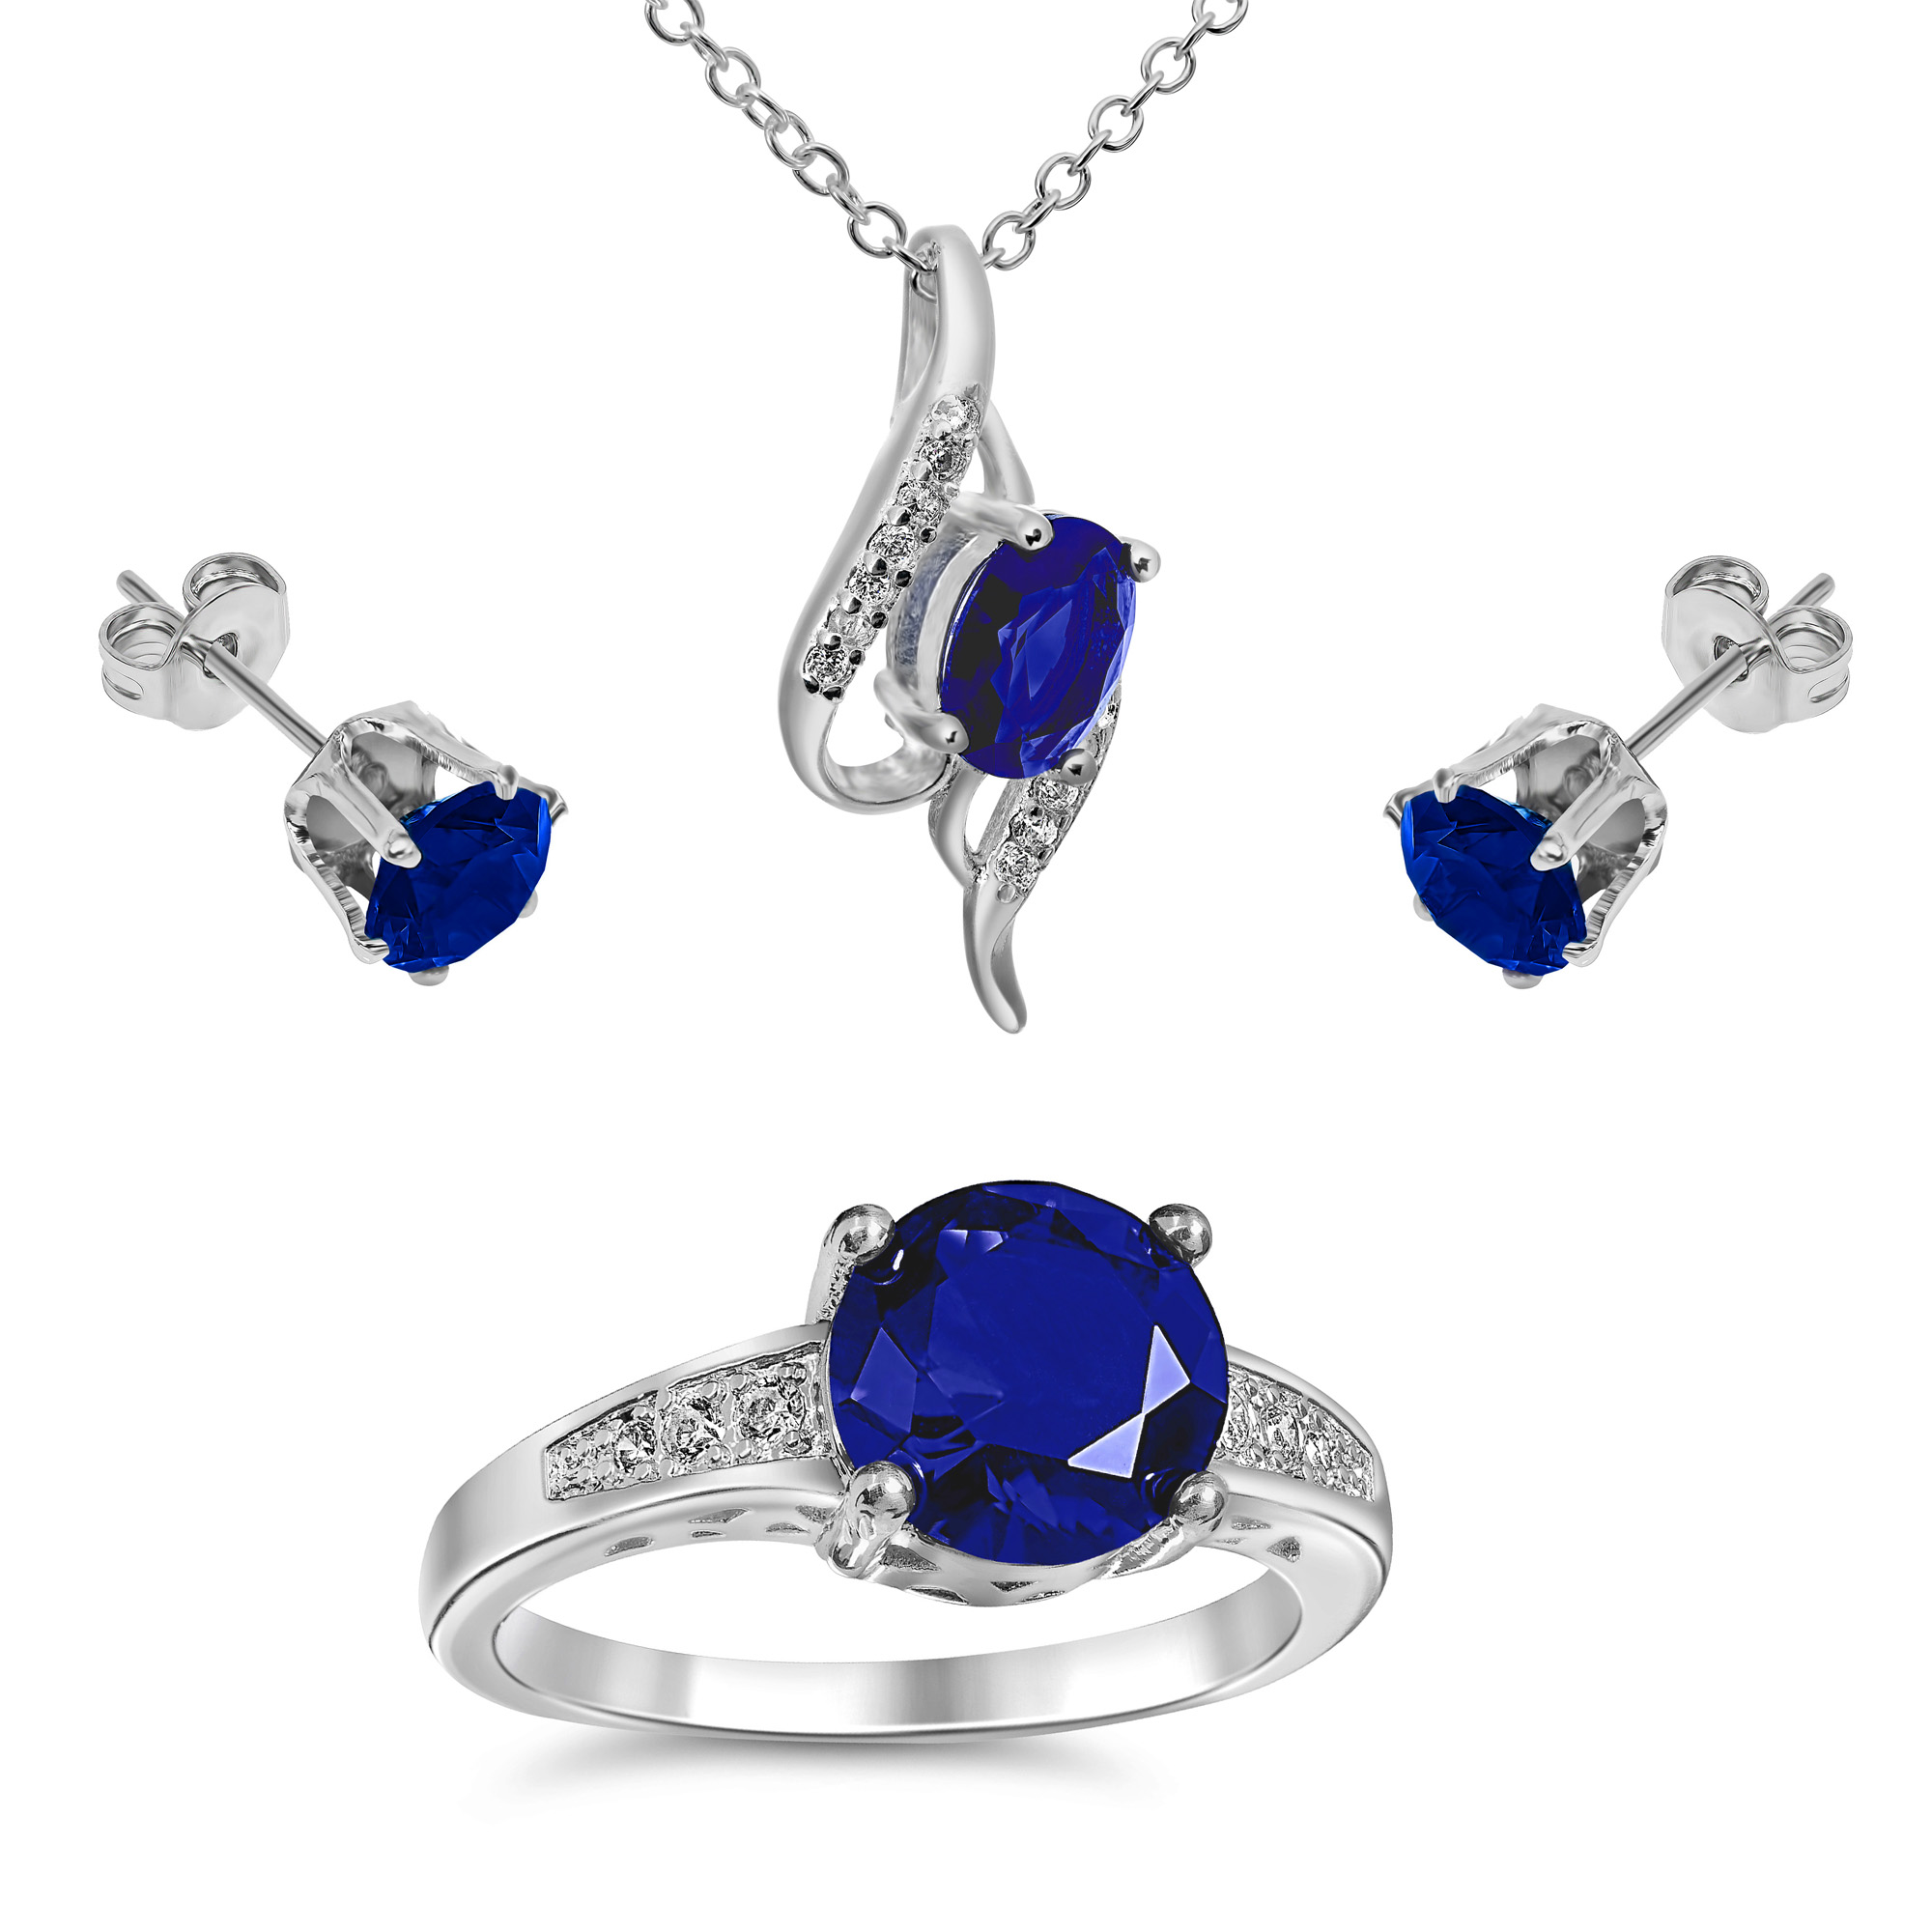 majestic pendants blue beads pieces crystal pear charms beadaholique swarovski swcr pendant